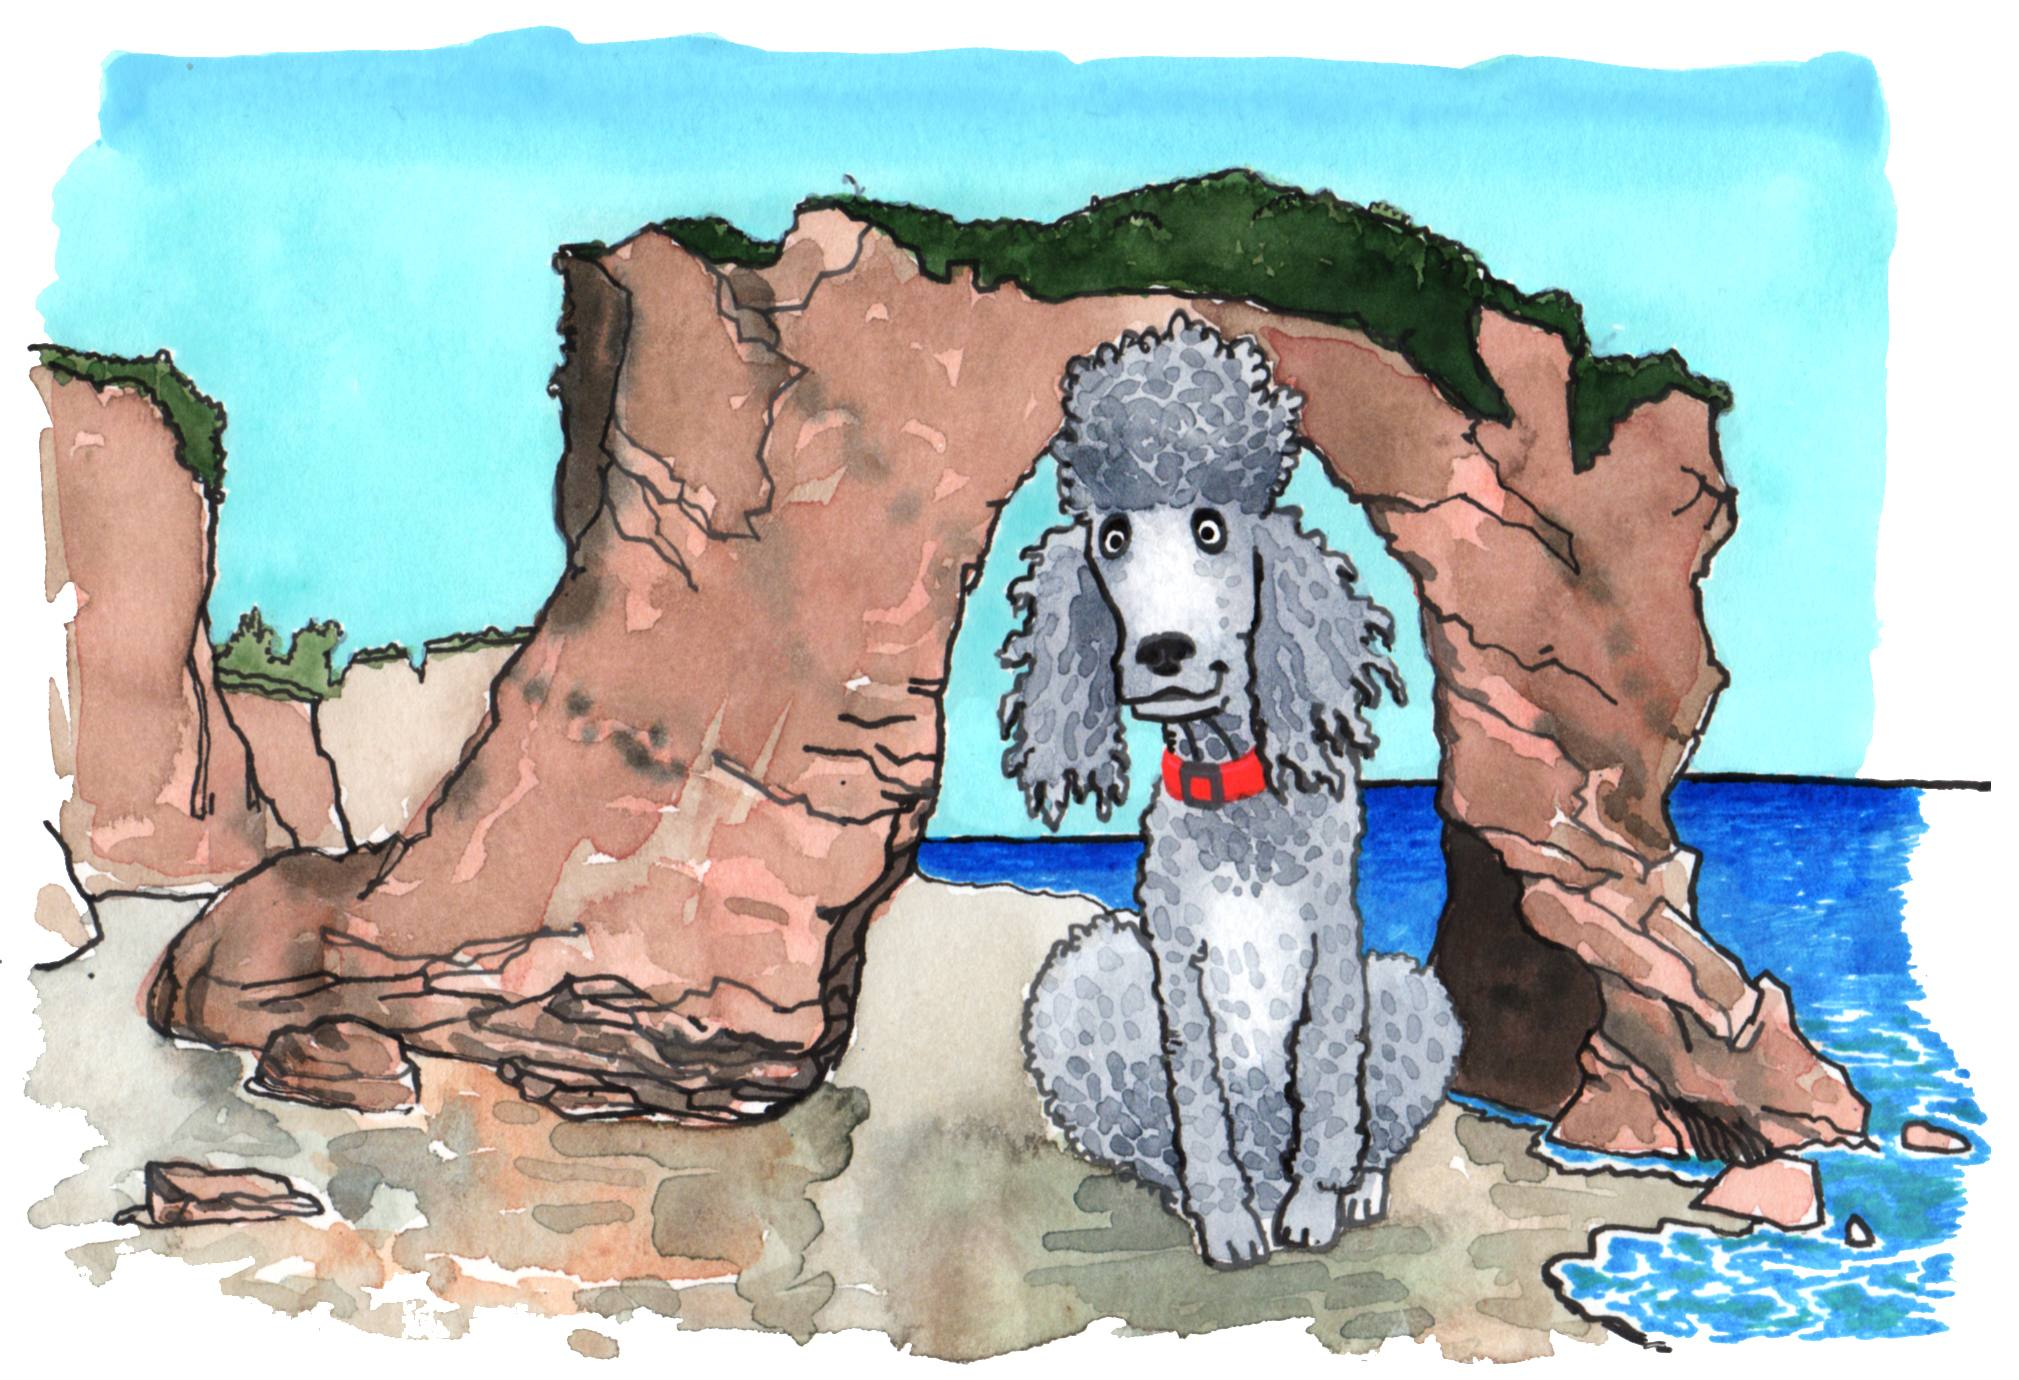 Standard Poodle in Malibu | Illustration by Max Kornell